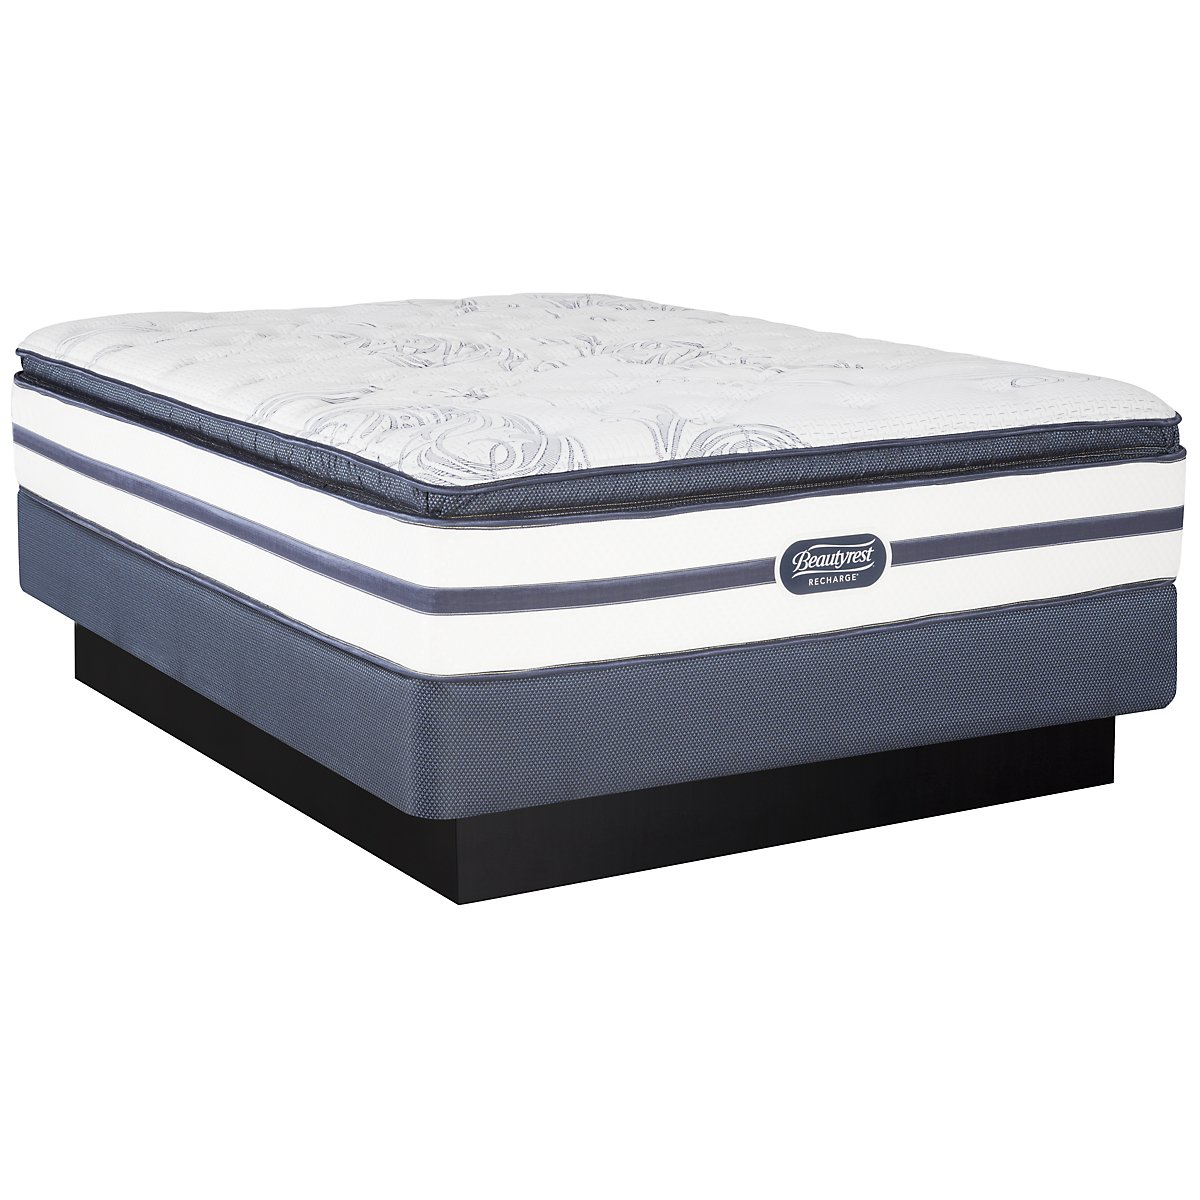 Beautyrest Recharge Audrina Luxury Firm Innerspring Pillow Top Mattress Set